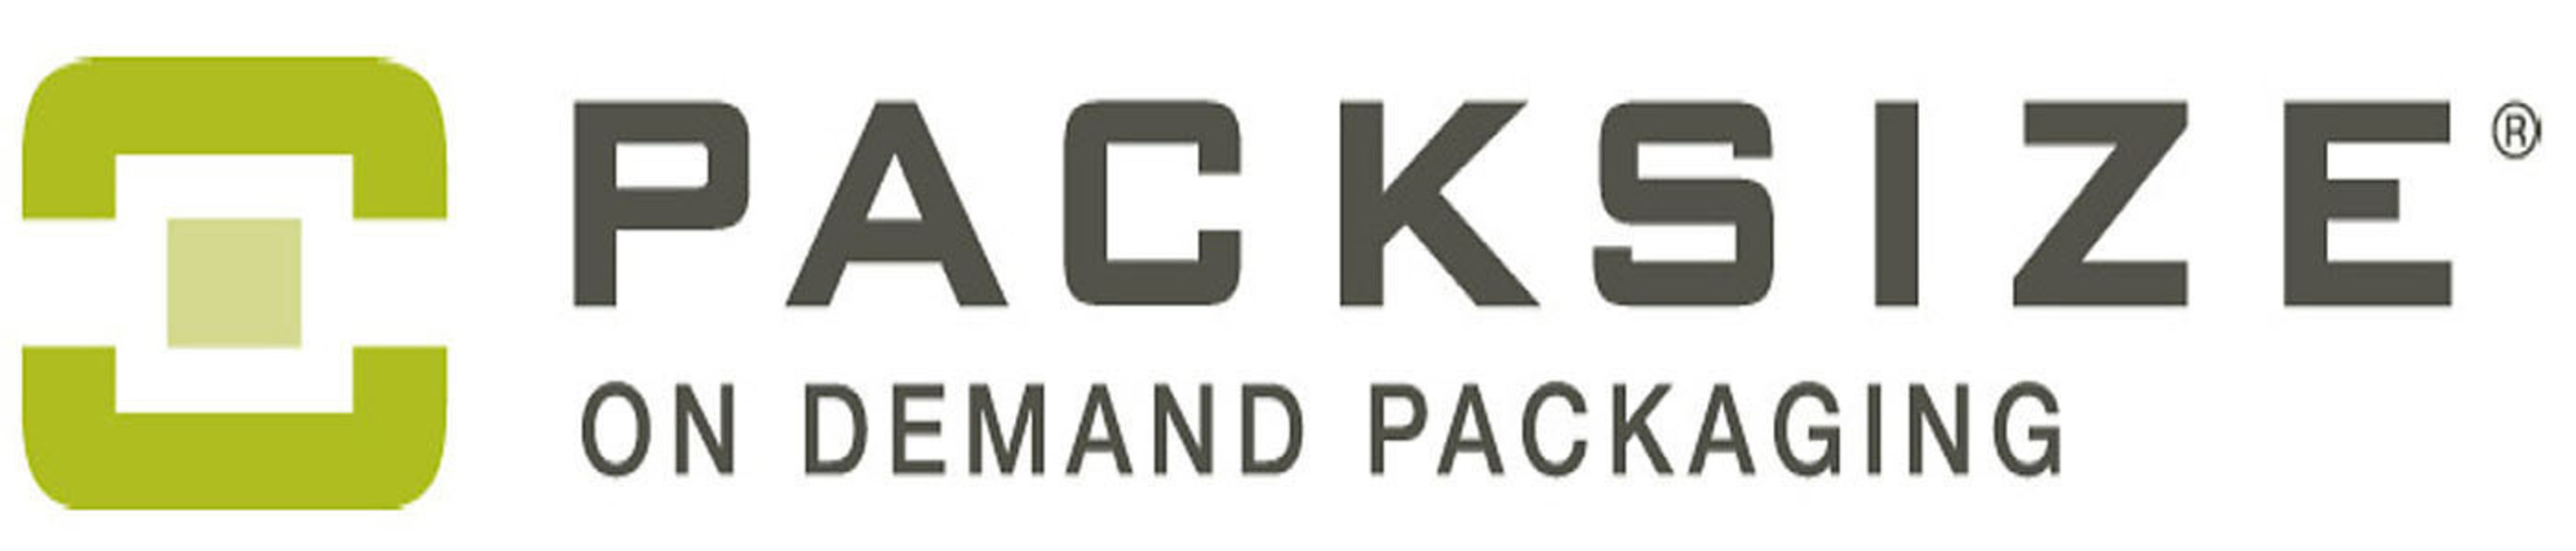 Packsize makes it easy with On Demand Packaging ( http://www.packsize.com/on-demand ), a revolutionary packaging system that lets companies produce the right-sized box exactly when they need it. (PRNewsFoto/Packsize International LLC) (PRNewsFoto/)